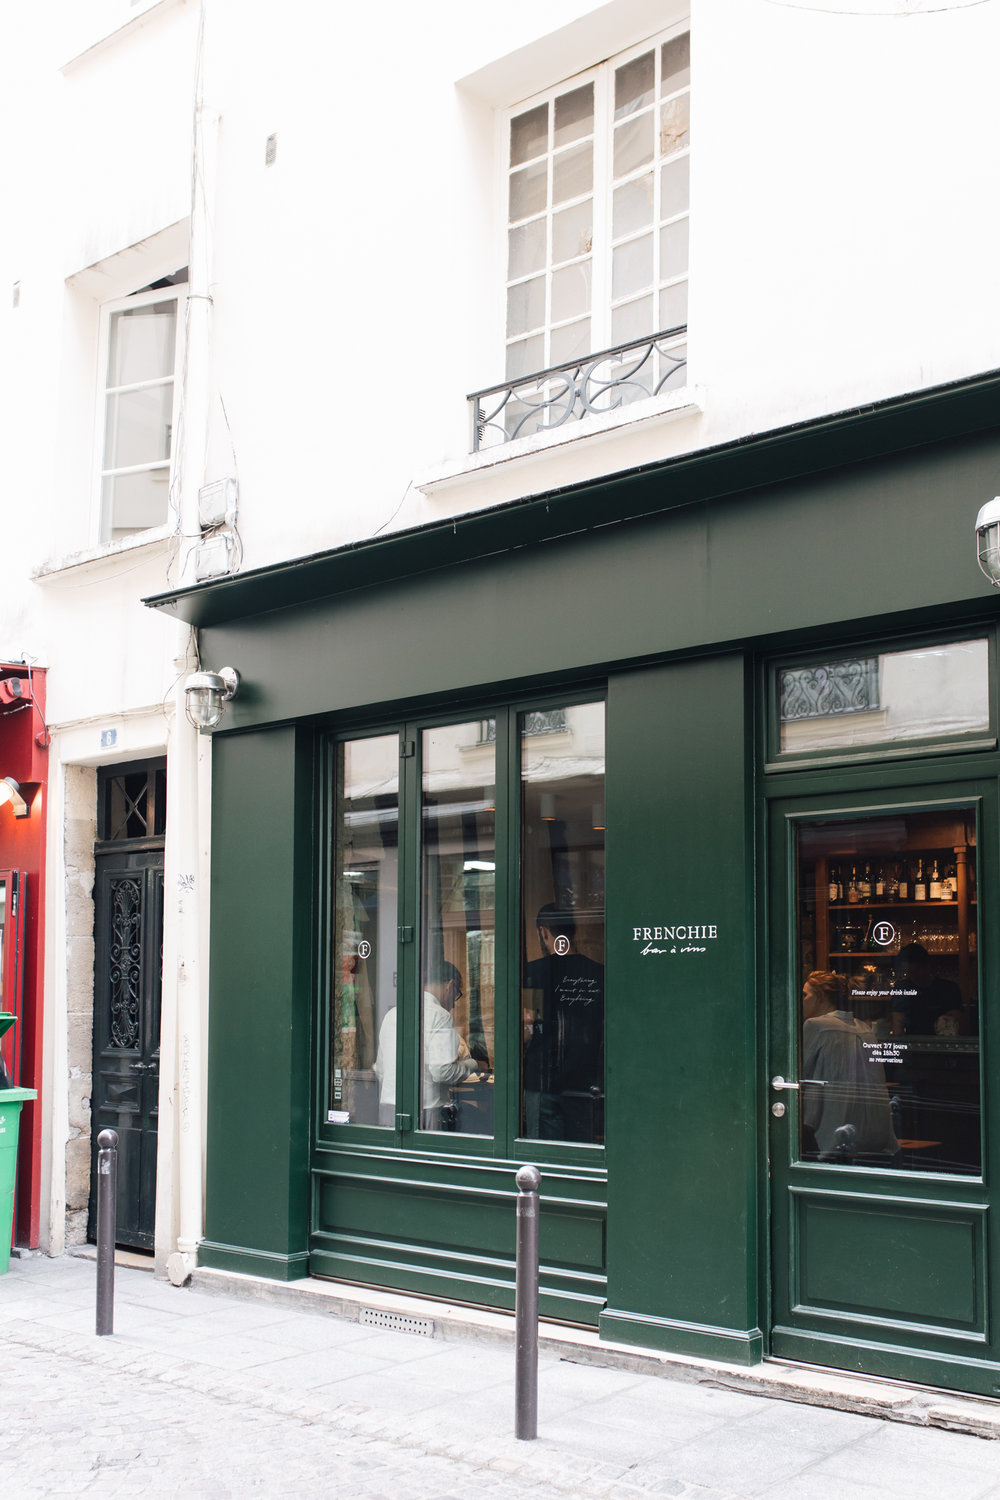 I adored this restaurant -  Frenchie Bar a Vins  which, as its name suggests, is the more casual wine bar version of  Frenchie  across the lane way. You need to book for Frenchie, but not for the wine bar, so get there early.